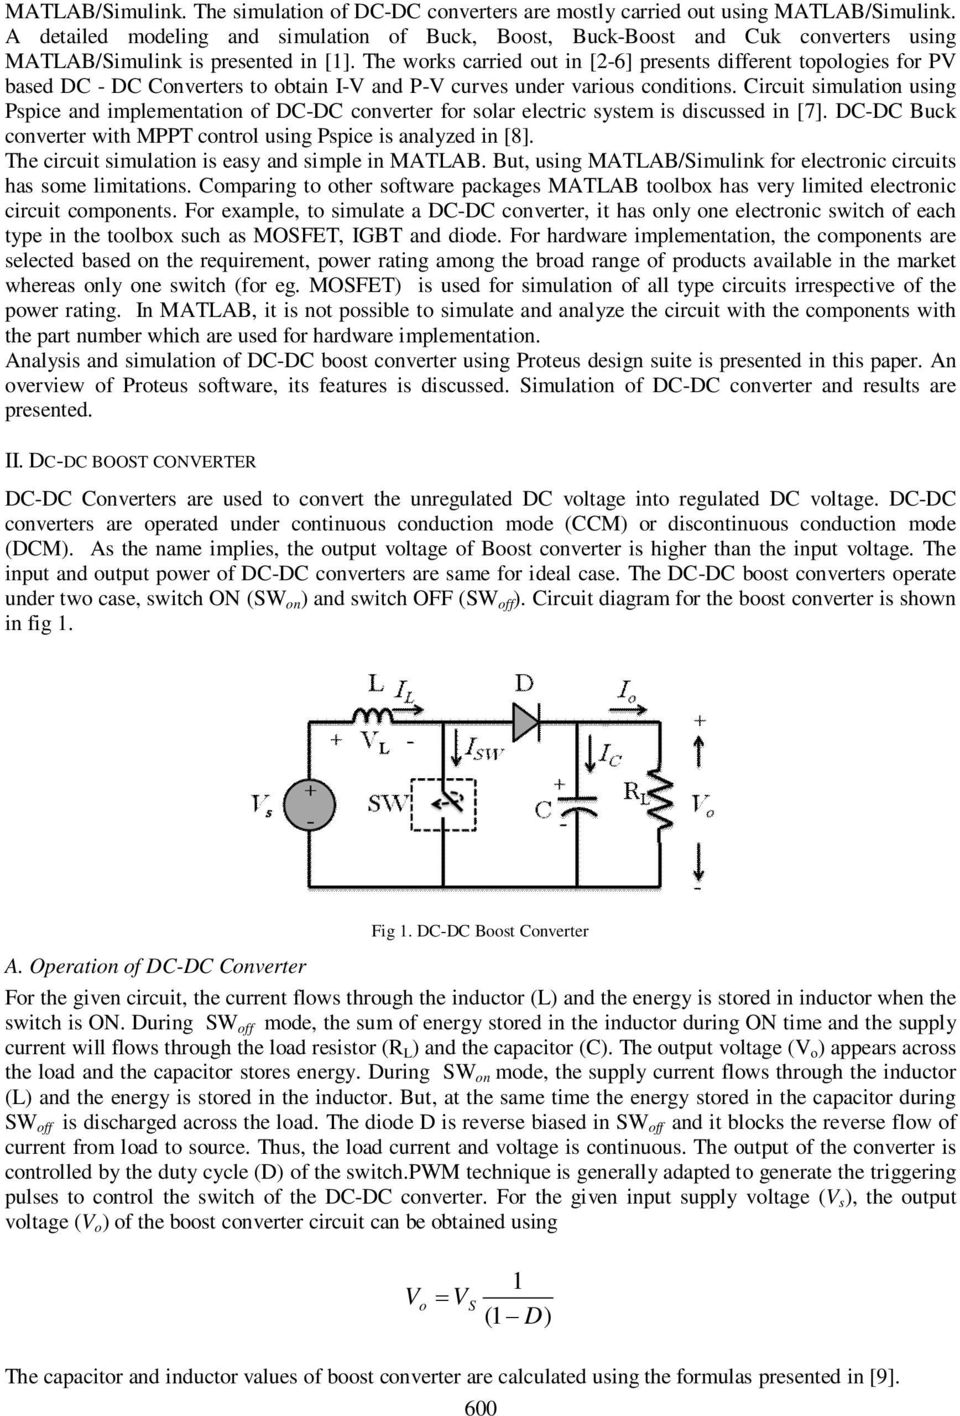 Design Simulation And Analysis Of Microcontroller Based Dc Boost Converters For Electric Vehicles Intechopen The Works Carried Out In 2 6 Presents Different Topologies Pv